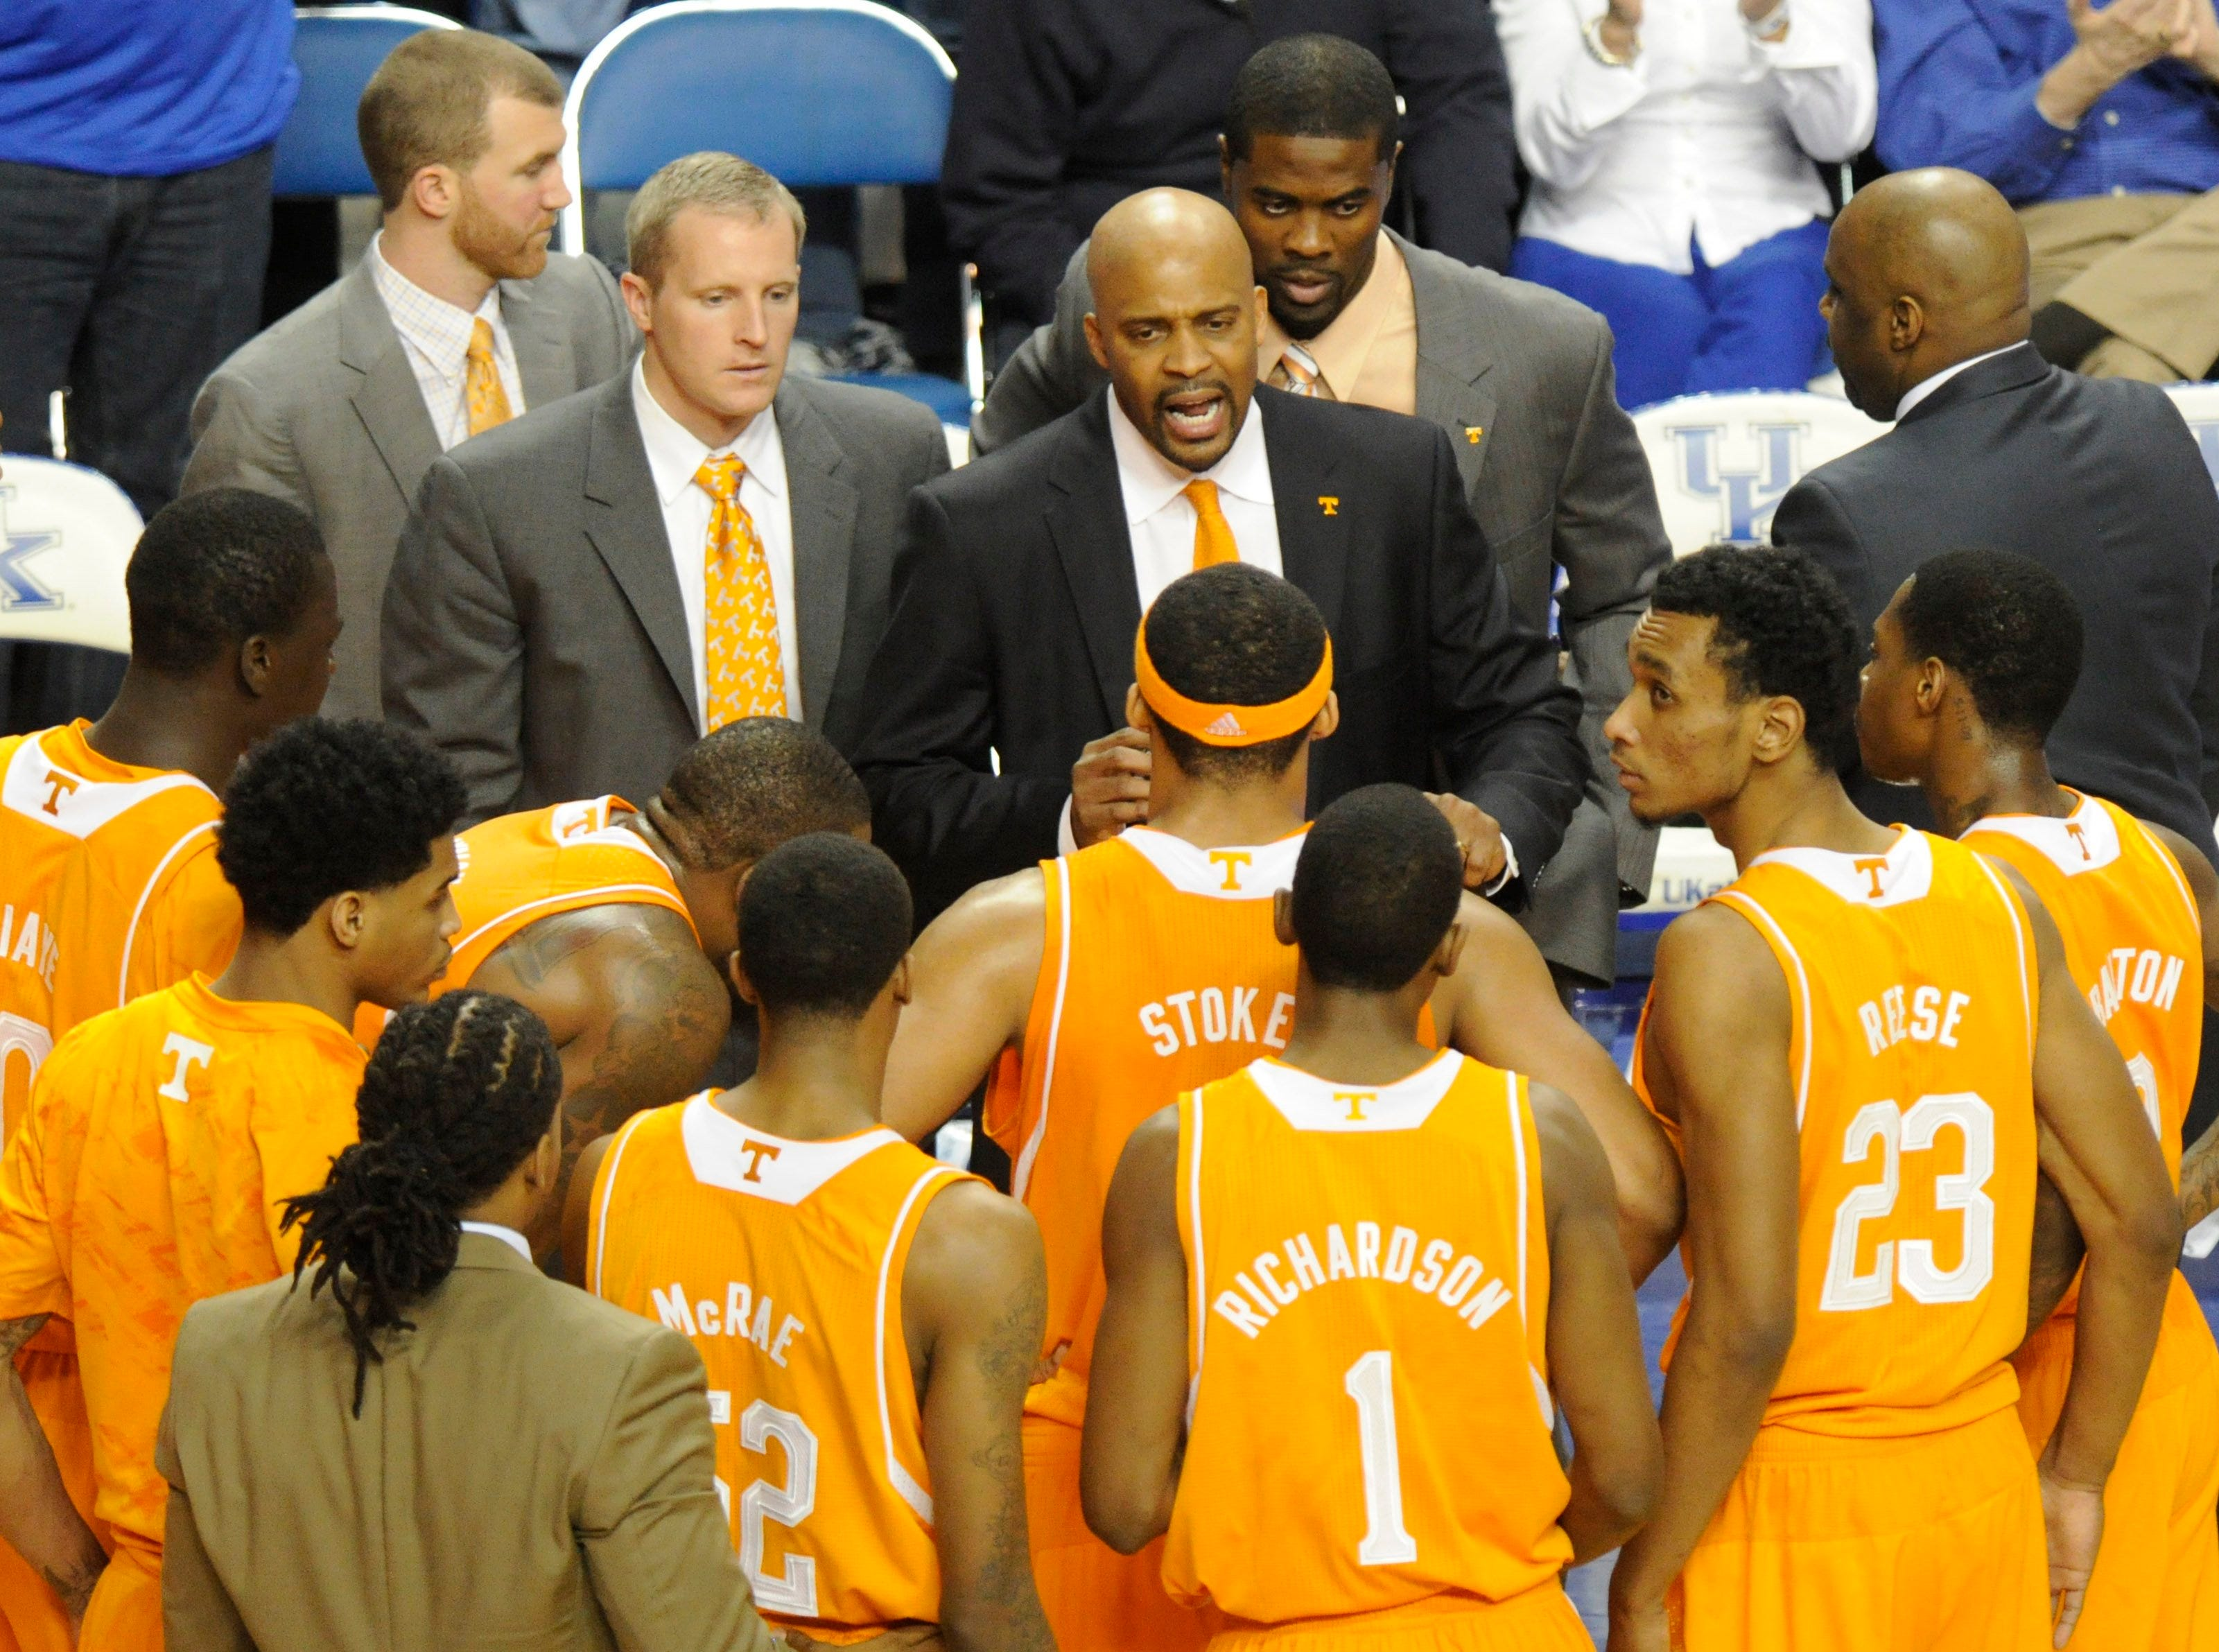 Tennessee head coach Cuonzo Martin huddles with his players on the sideline during a timeout in the second half at University of Kentucky's Rupp Arena in Lexington on Saturday, Jan. 18, 2014. Tennessee lost 74-66.